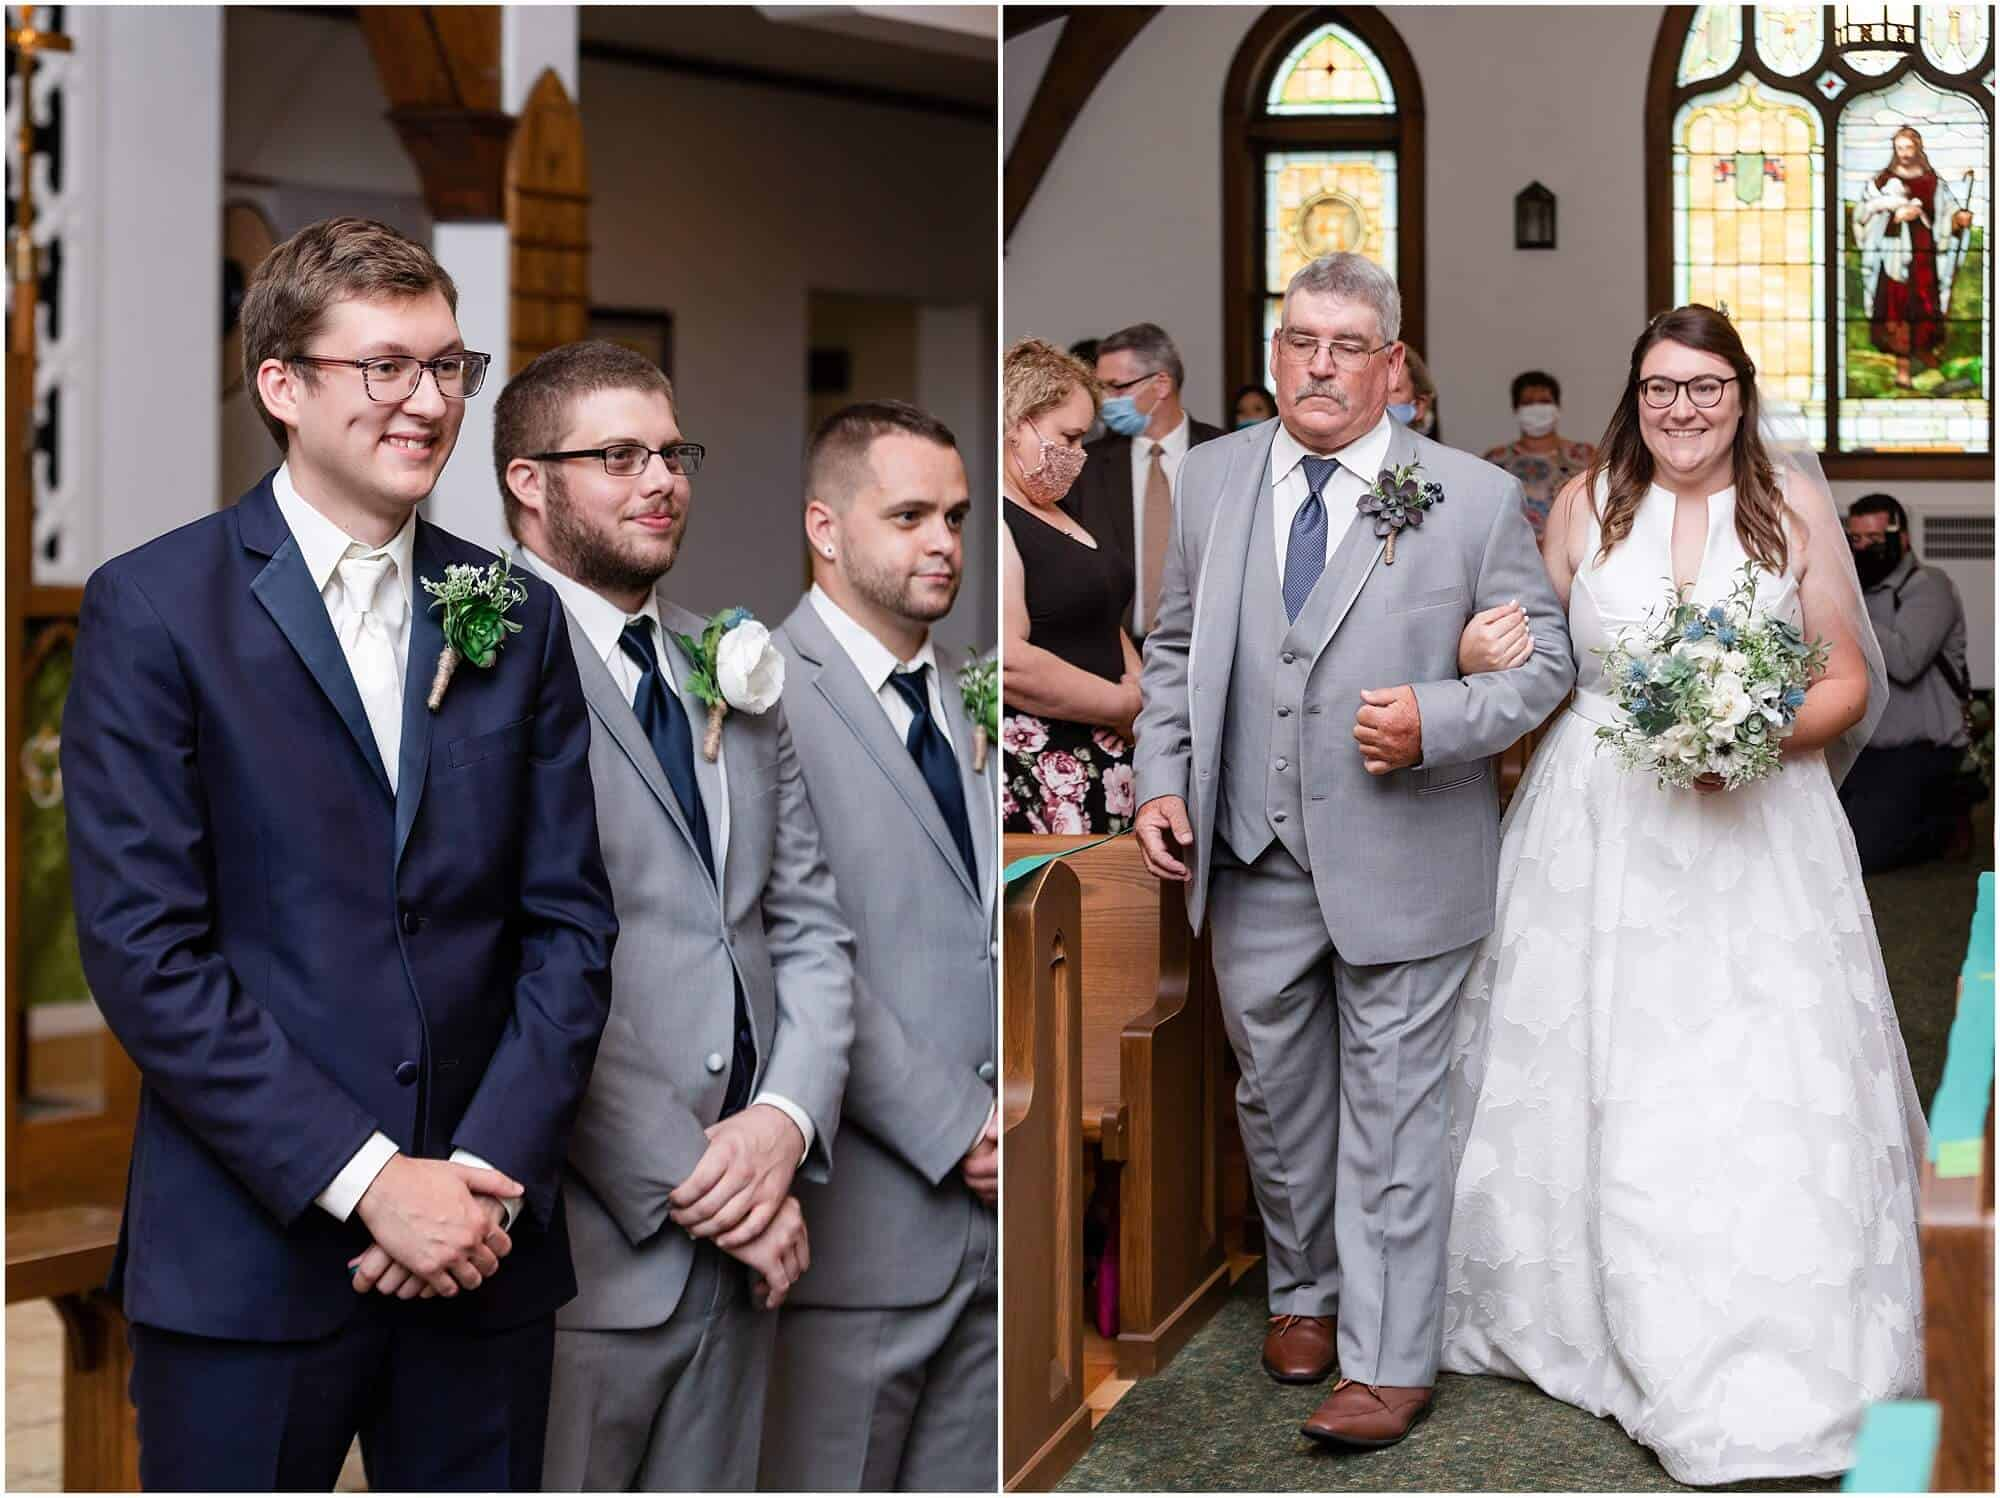 bride walks down the aisle to her groom by tiffany murray